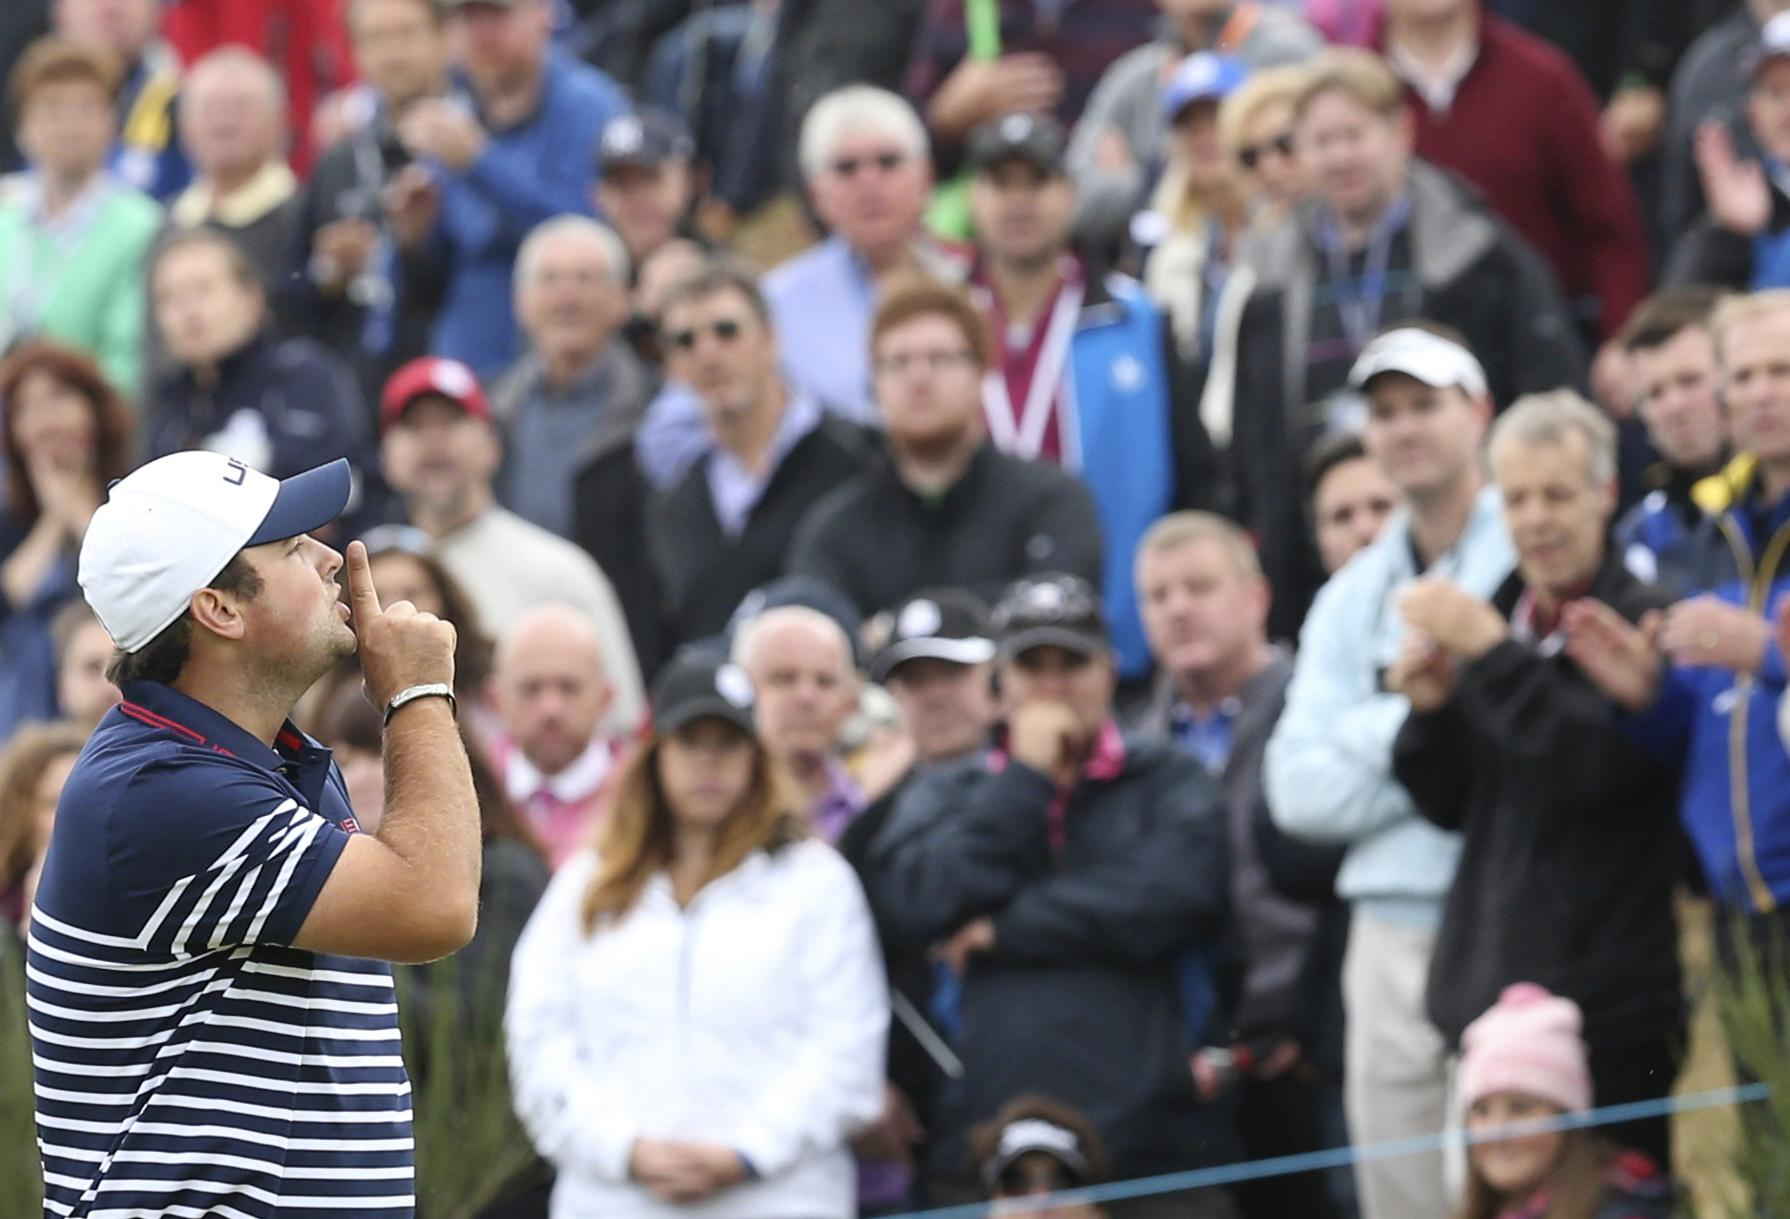 Reed famously told the home fans to shh in the 2014 Ryder Cup at Gleneagles too